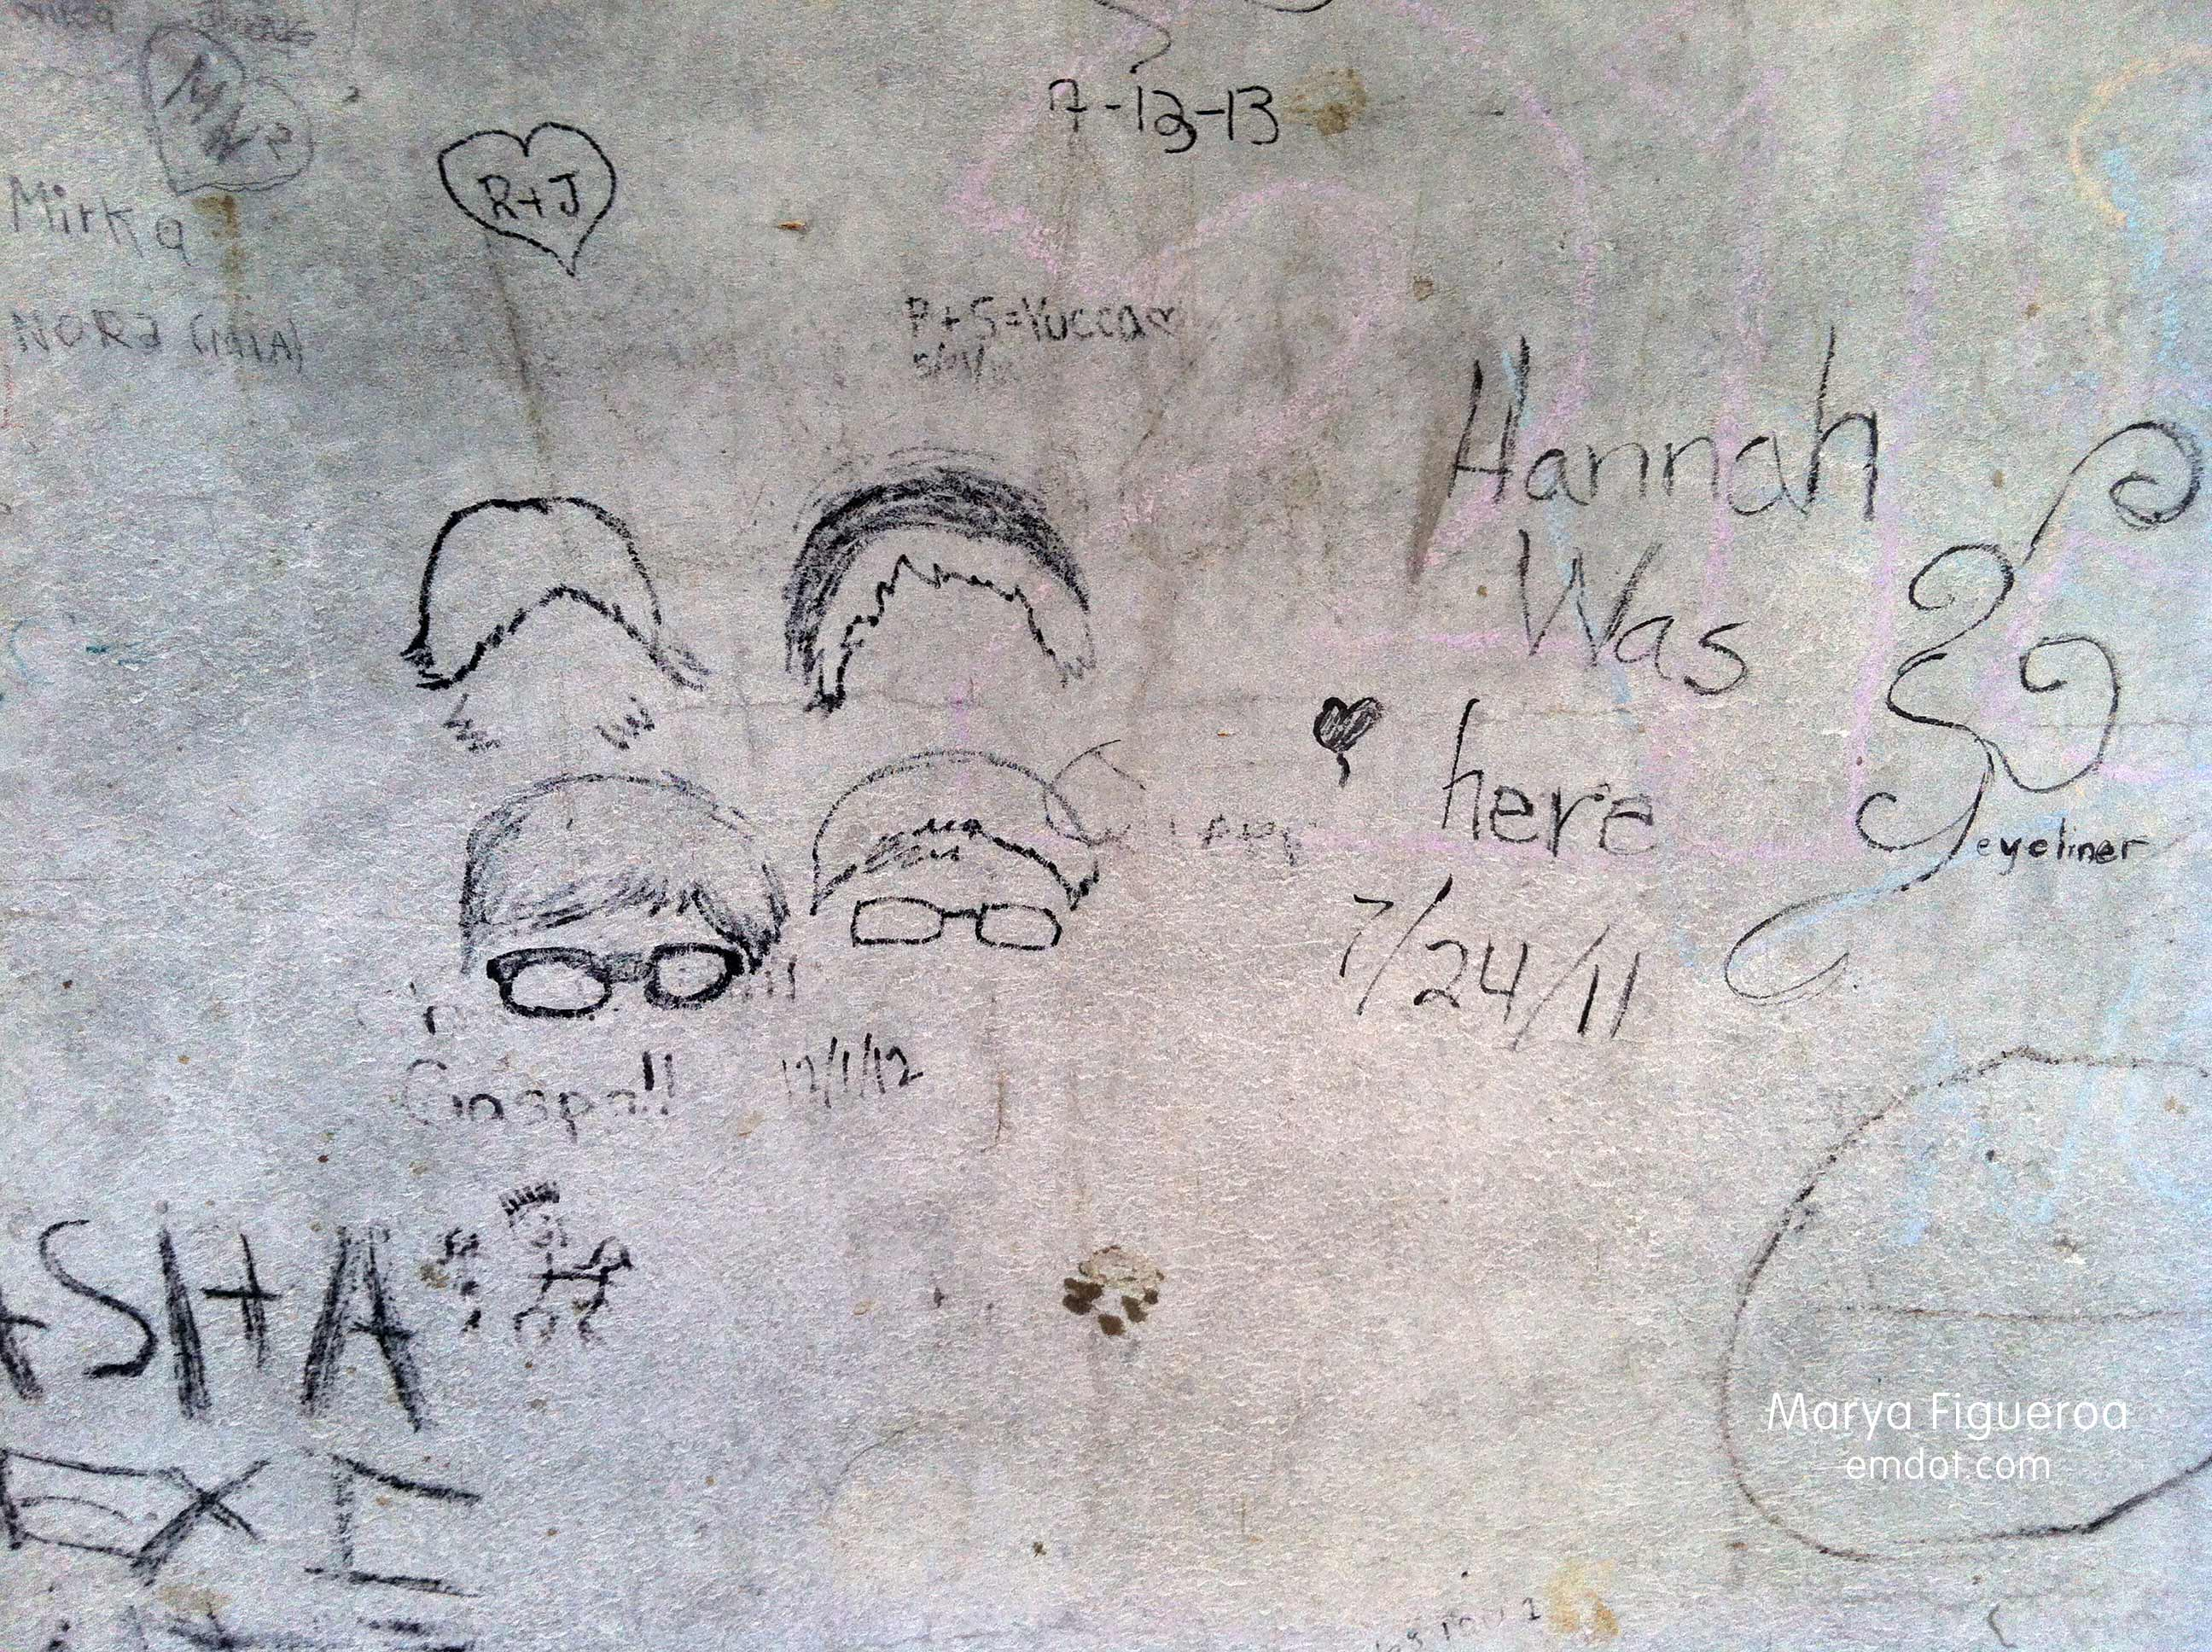 graffiti inside the structure (faces with glasses)